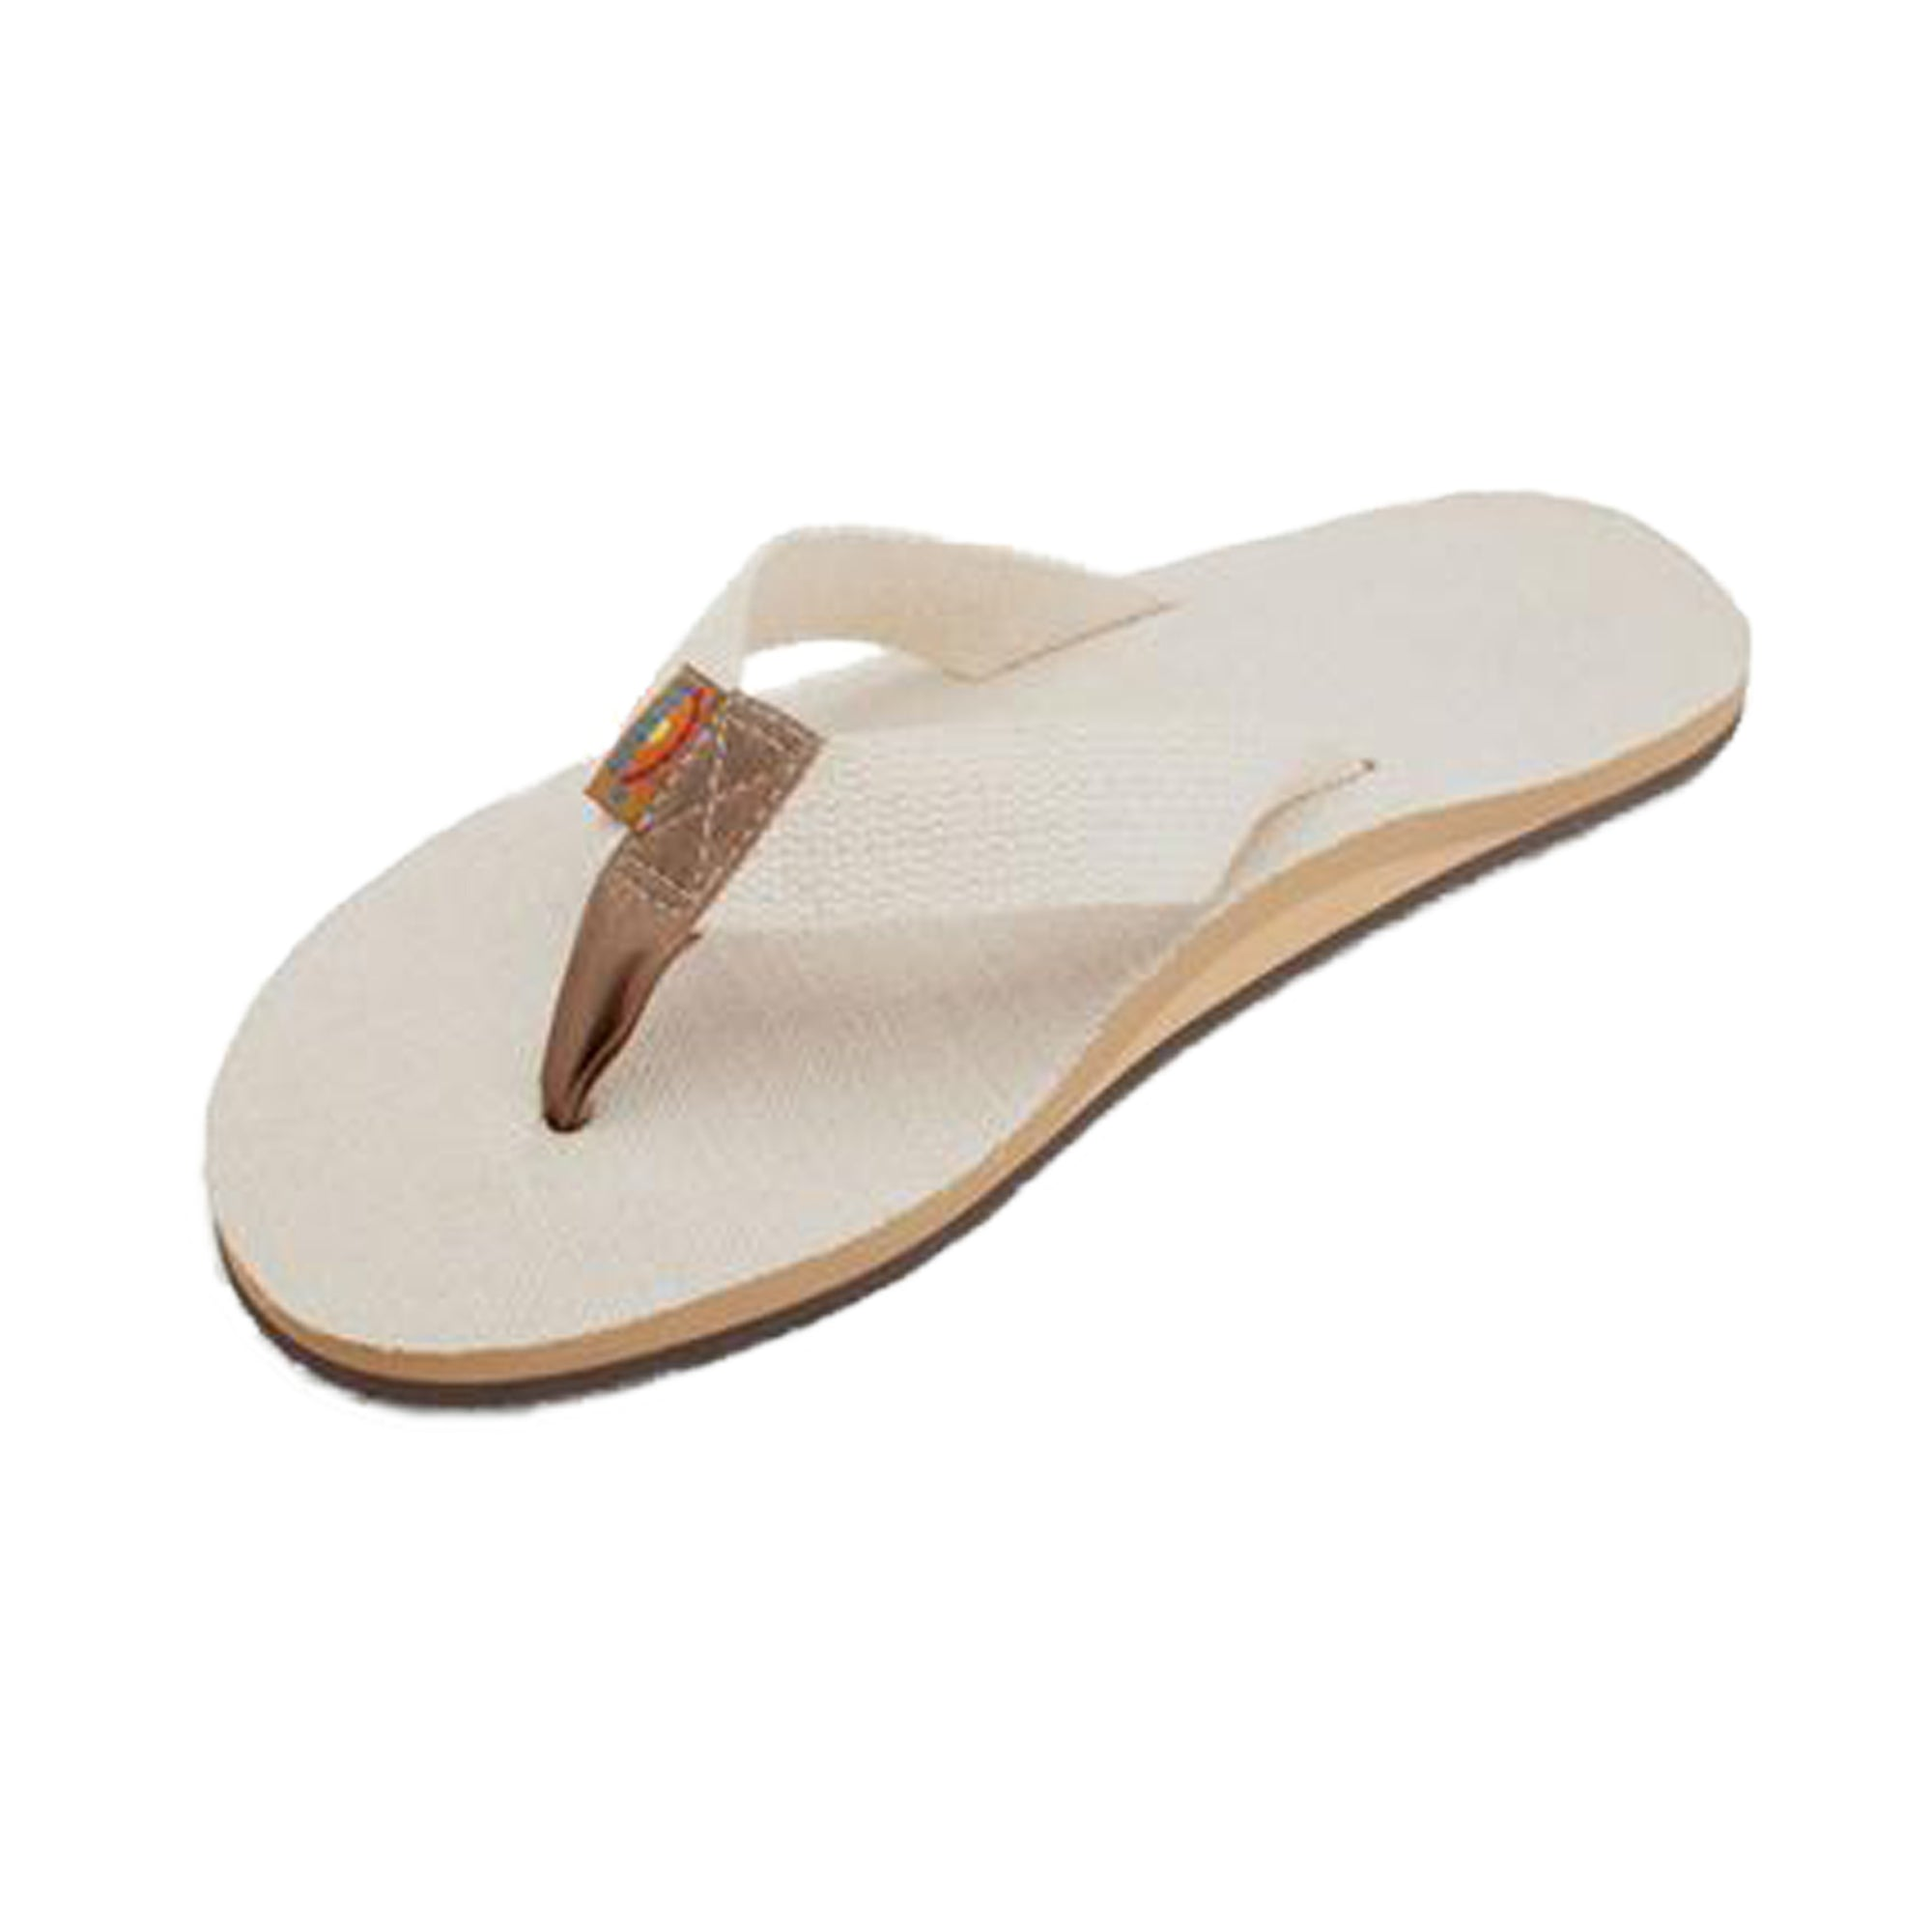 Rainbow Hemp Single Women's Sandal - Natural